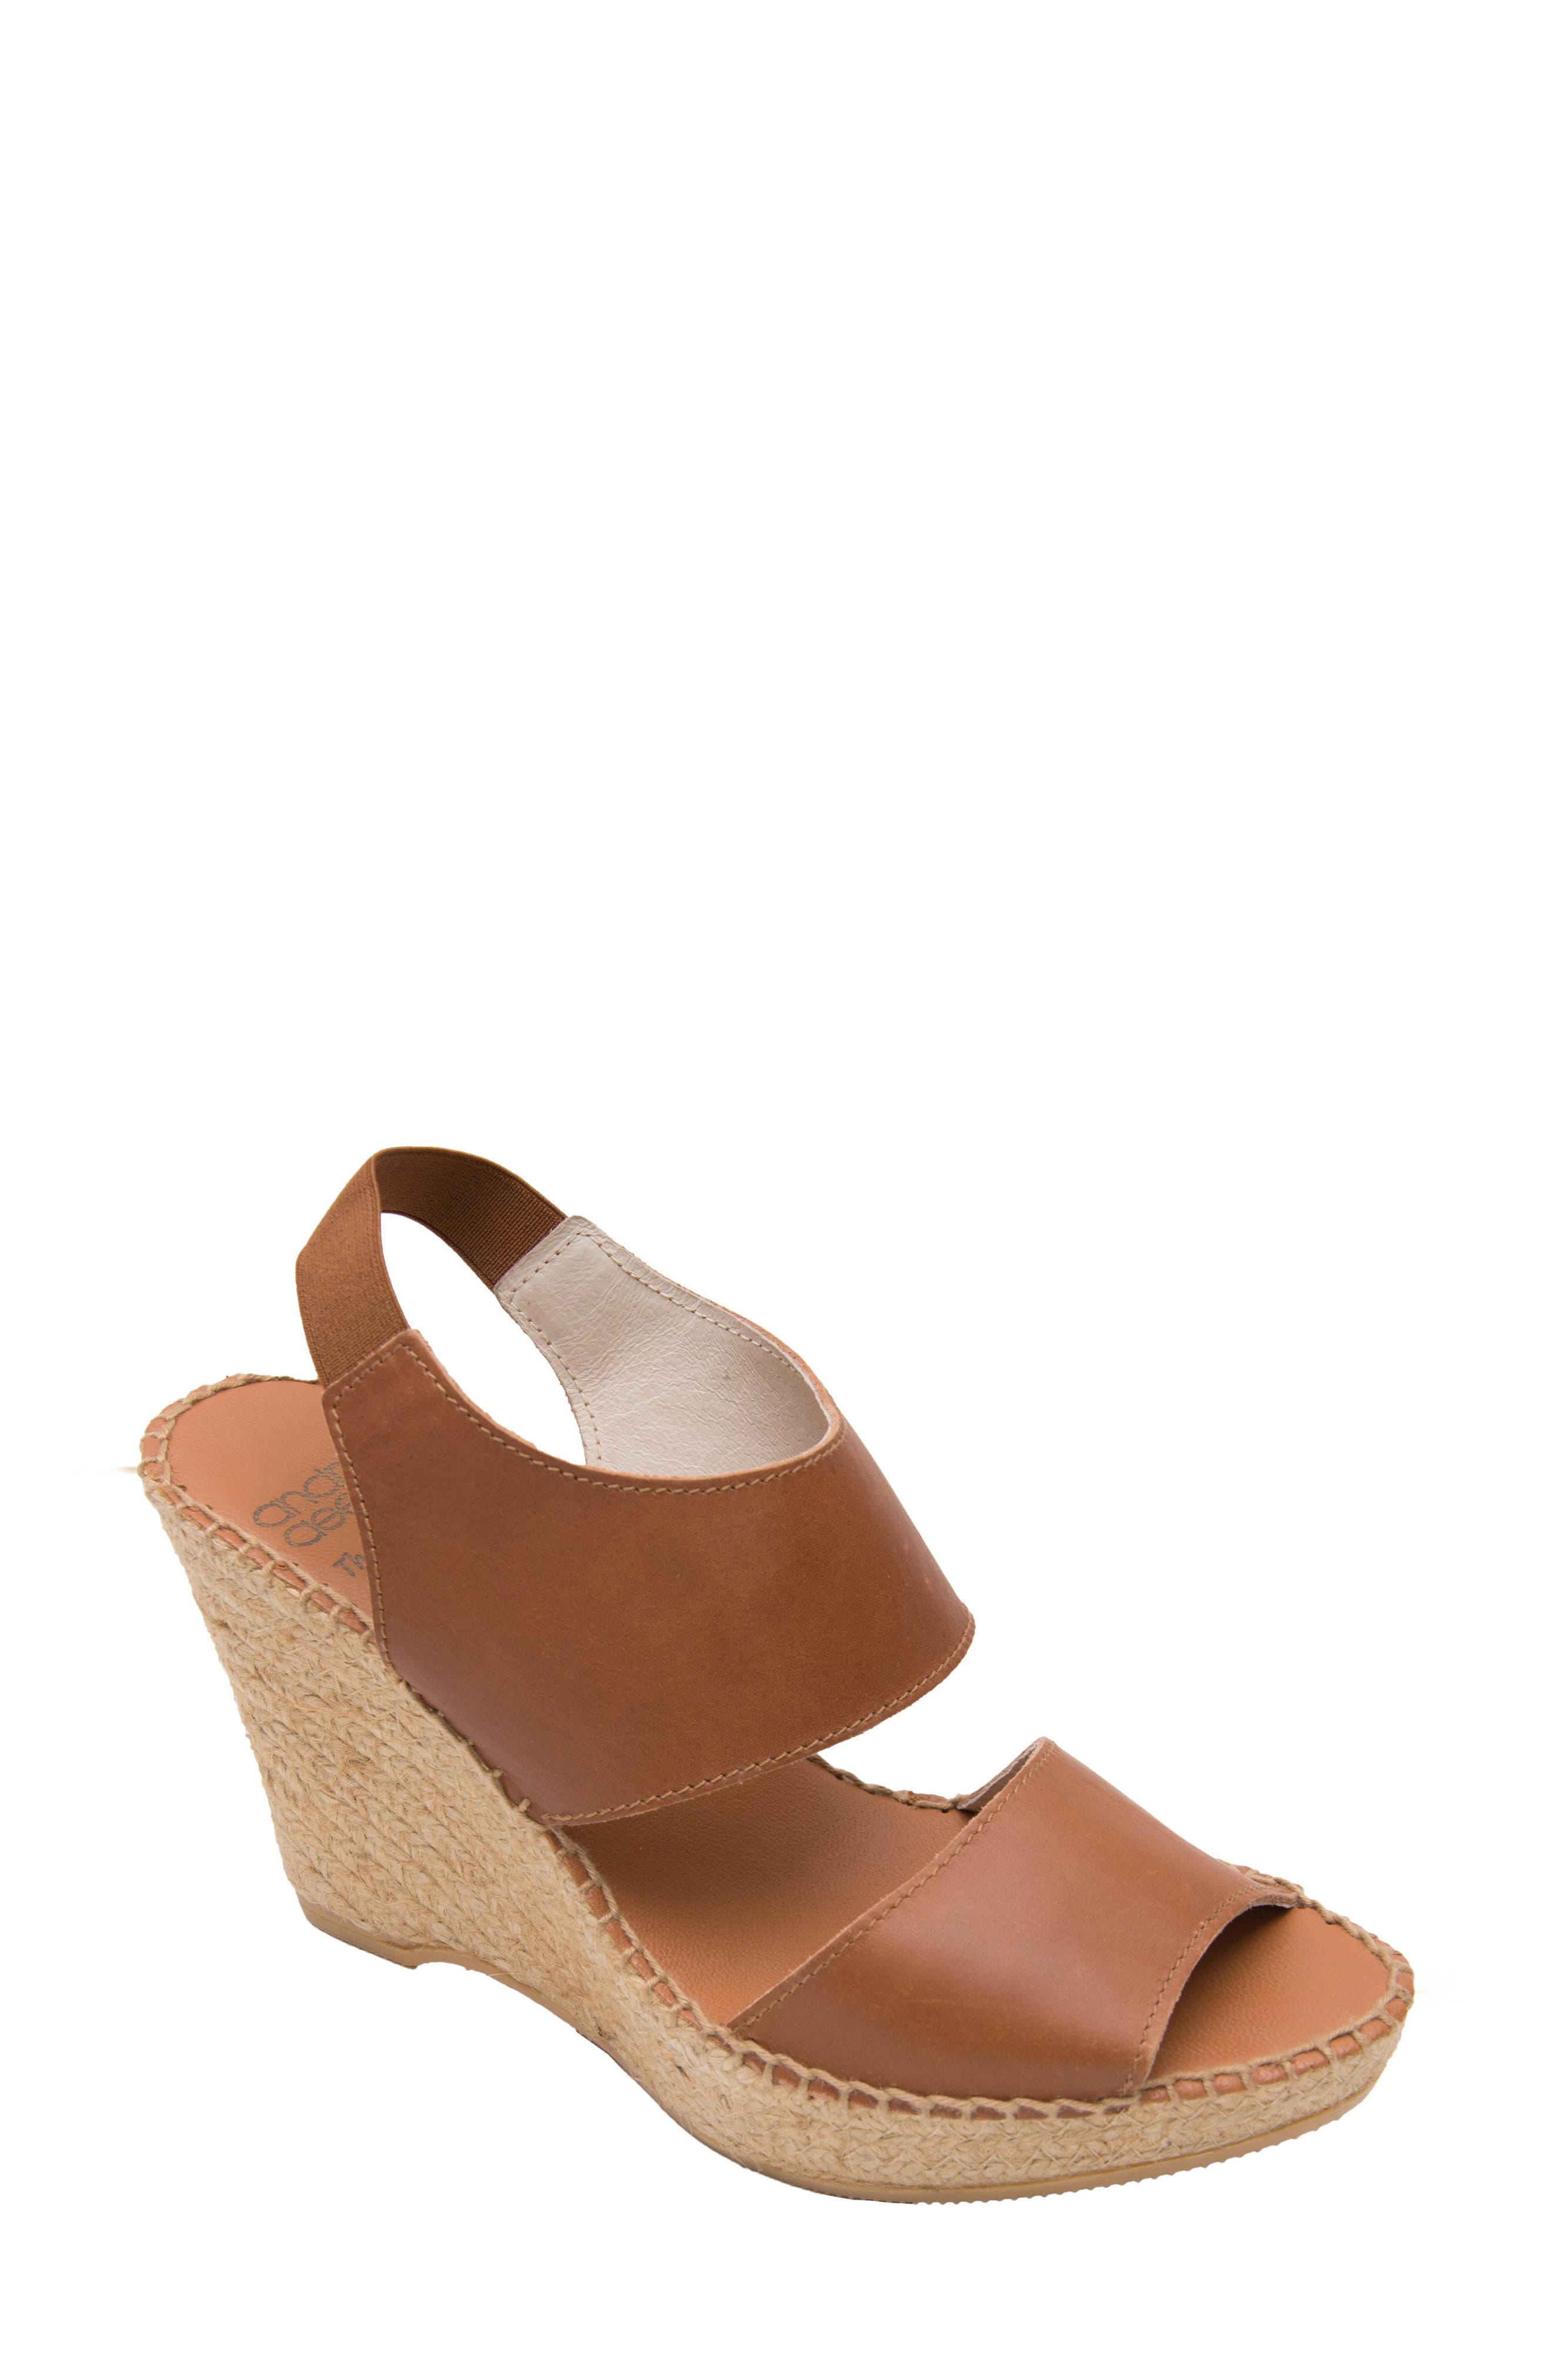 ANDRE ASSOUS 'Reese Hi' Sandal in Cuero Leather